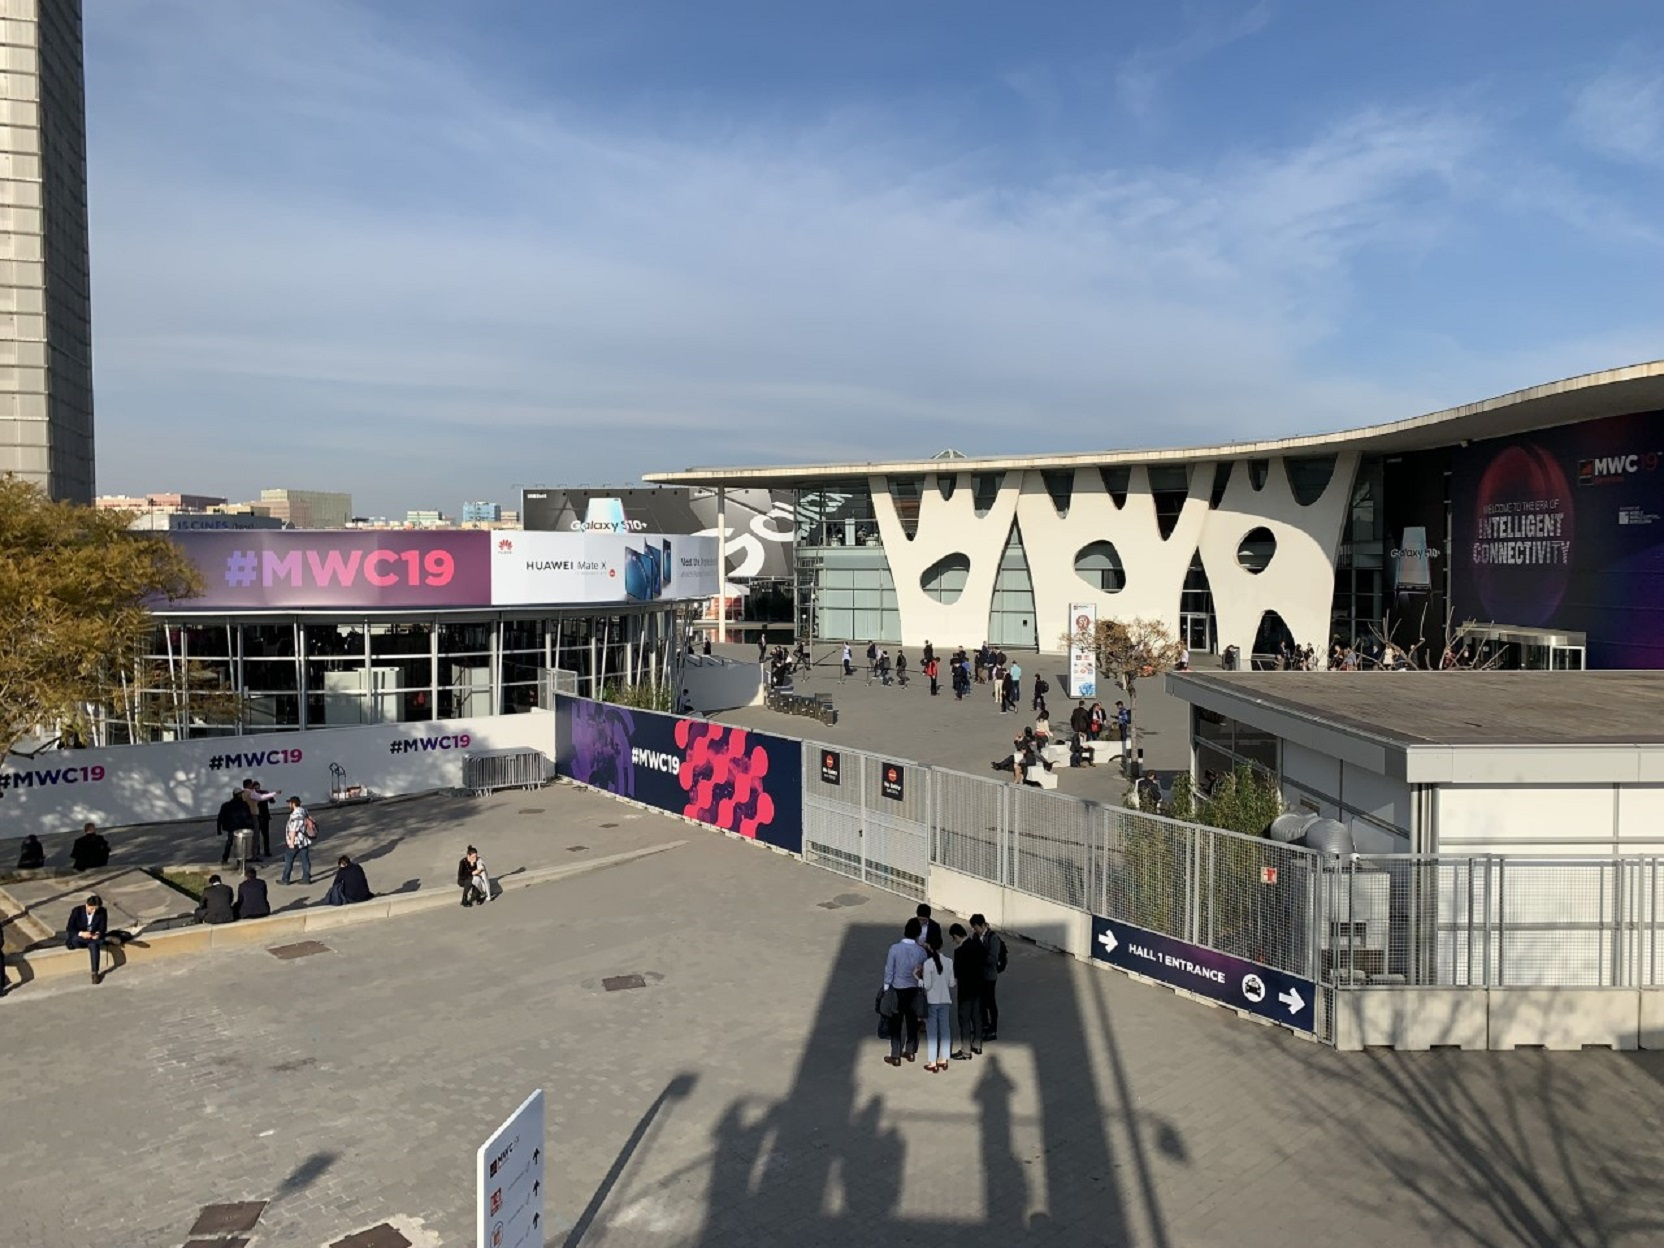 The 2019 Mobile World Congress in Barcelona